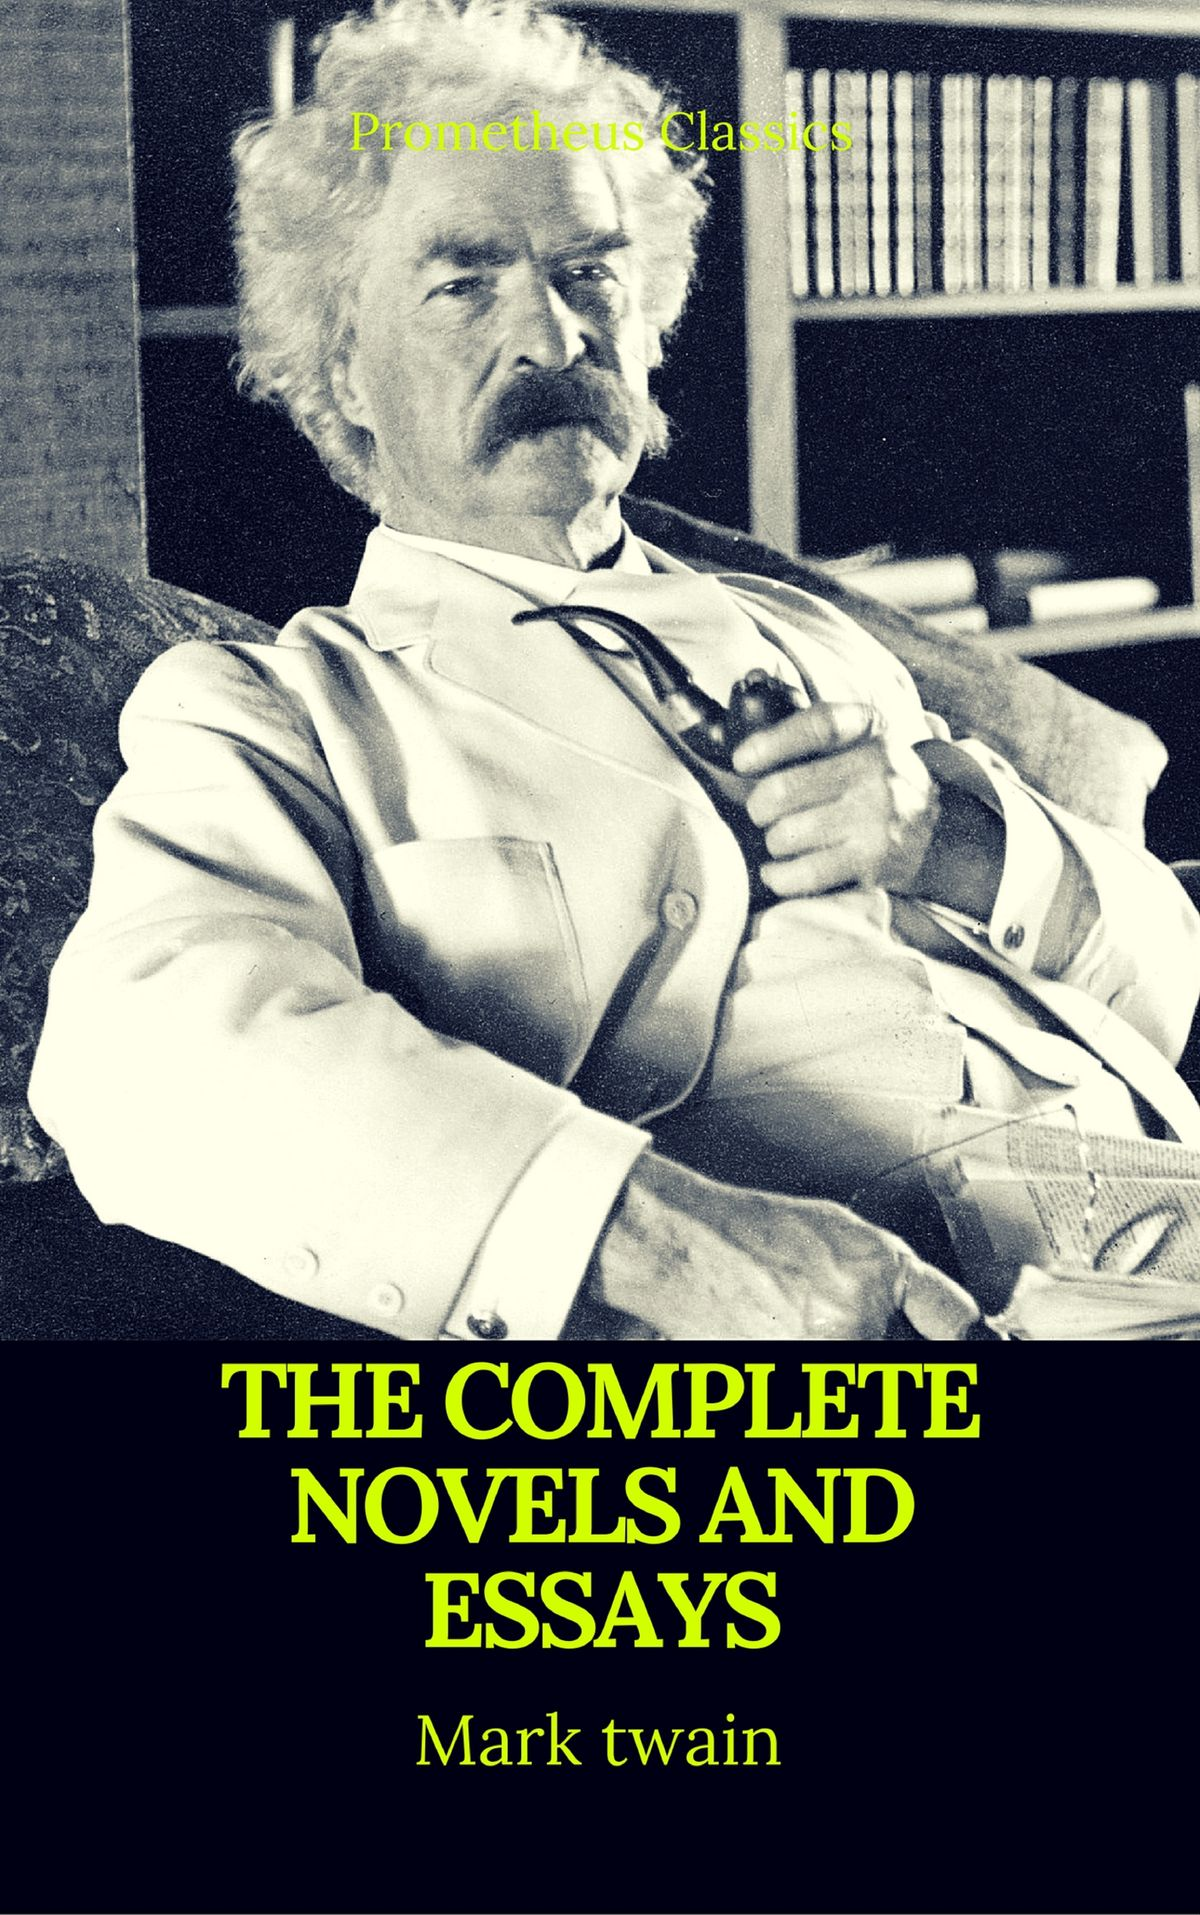 017 Mark Twain Essays The Complete Novels And Best Navigation Active Toc Prometheus Classics Essay Surprising Pdf On Writing Nonfiction Full